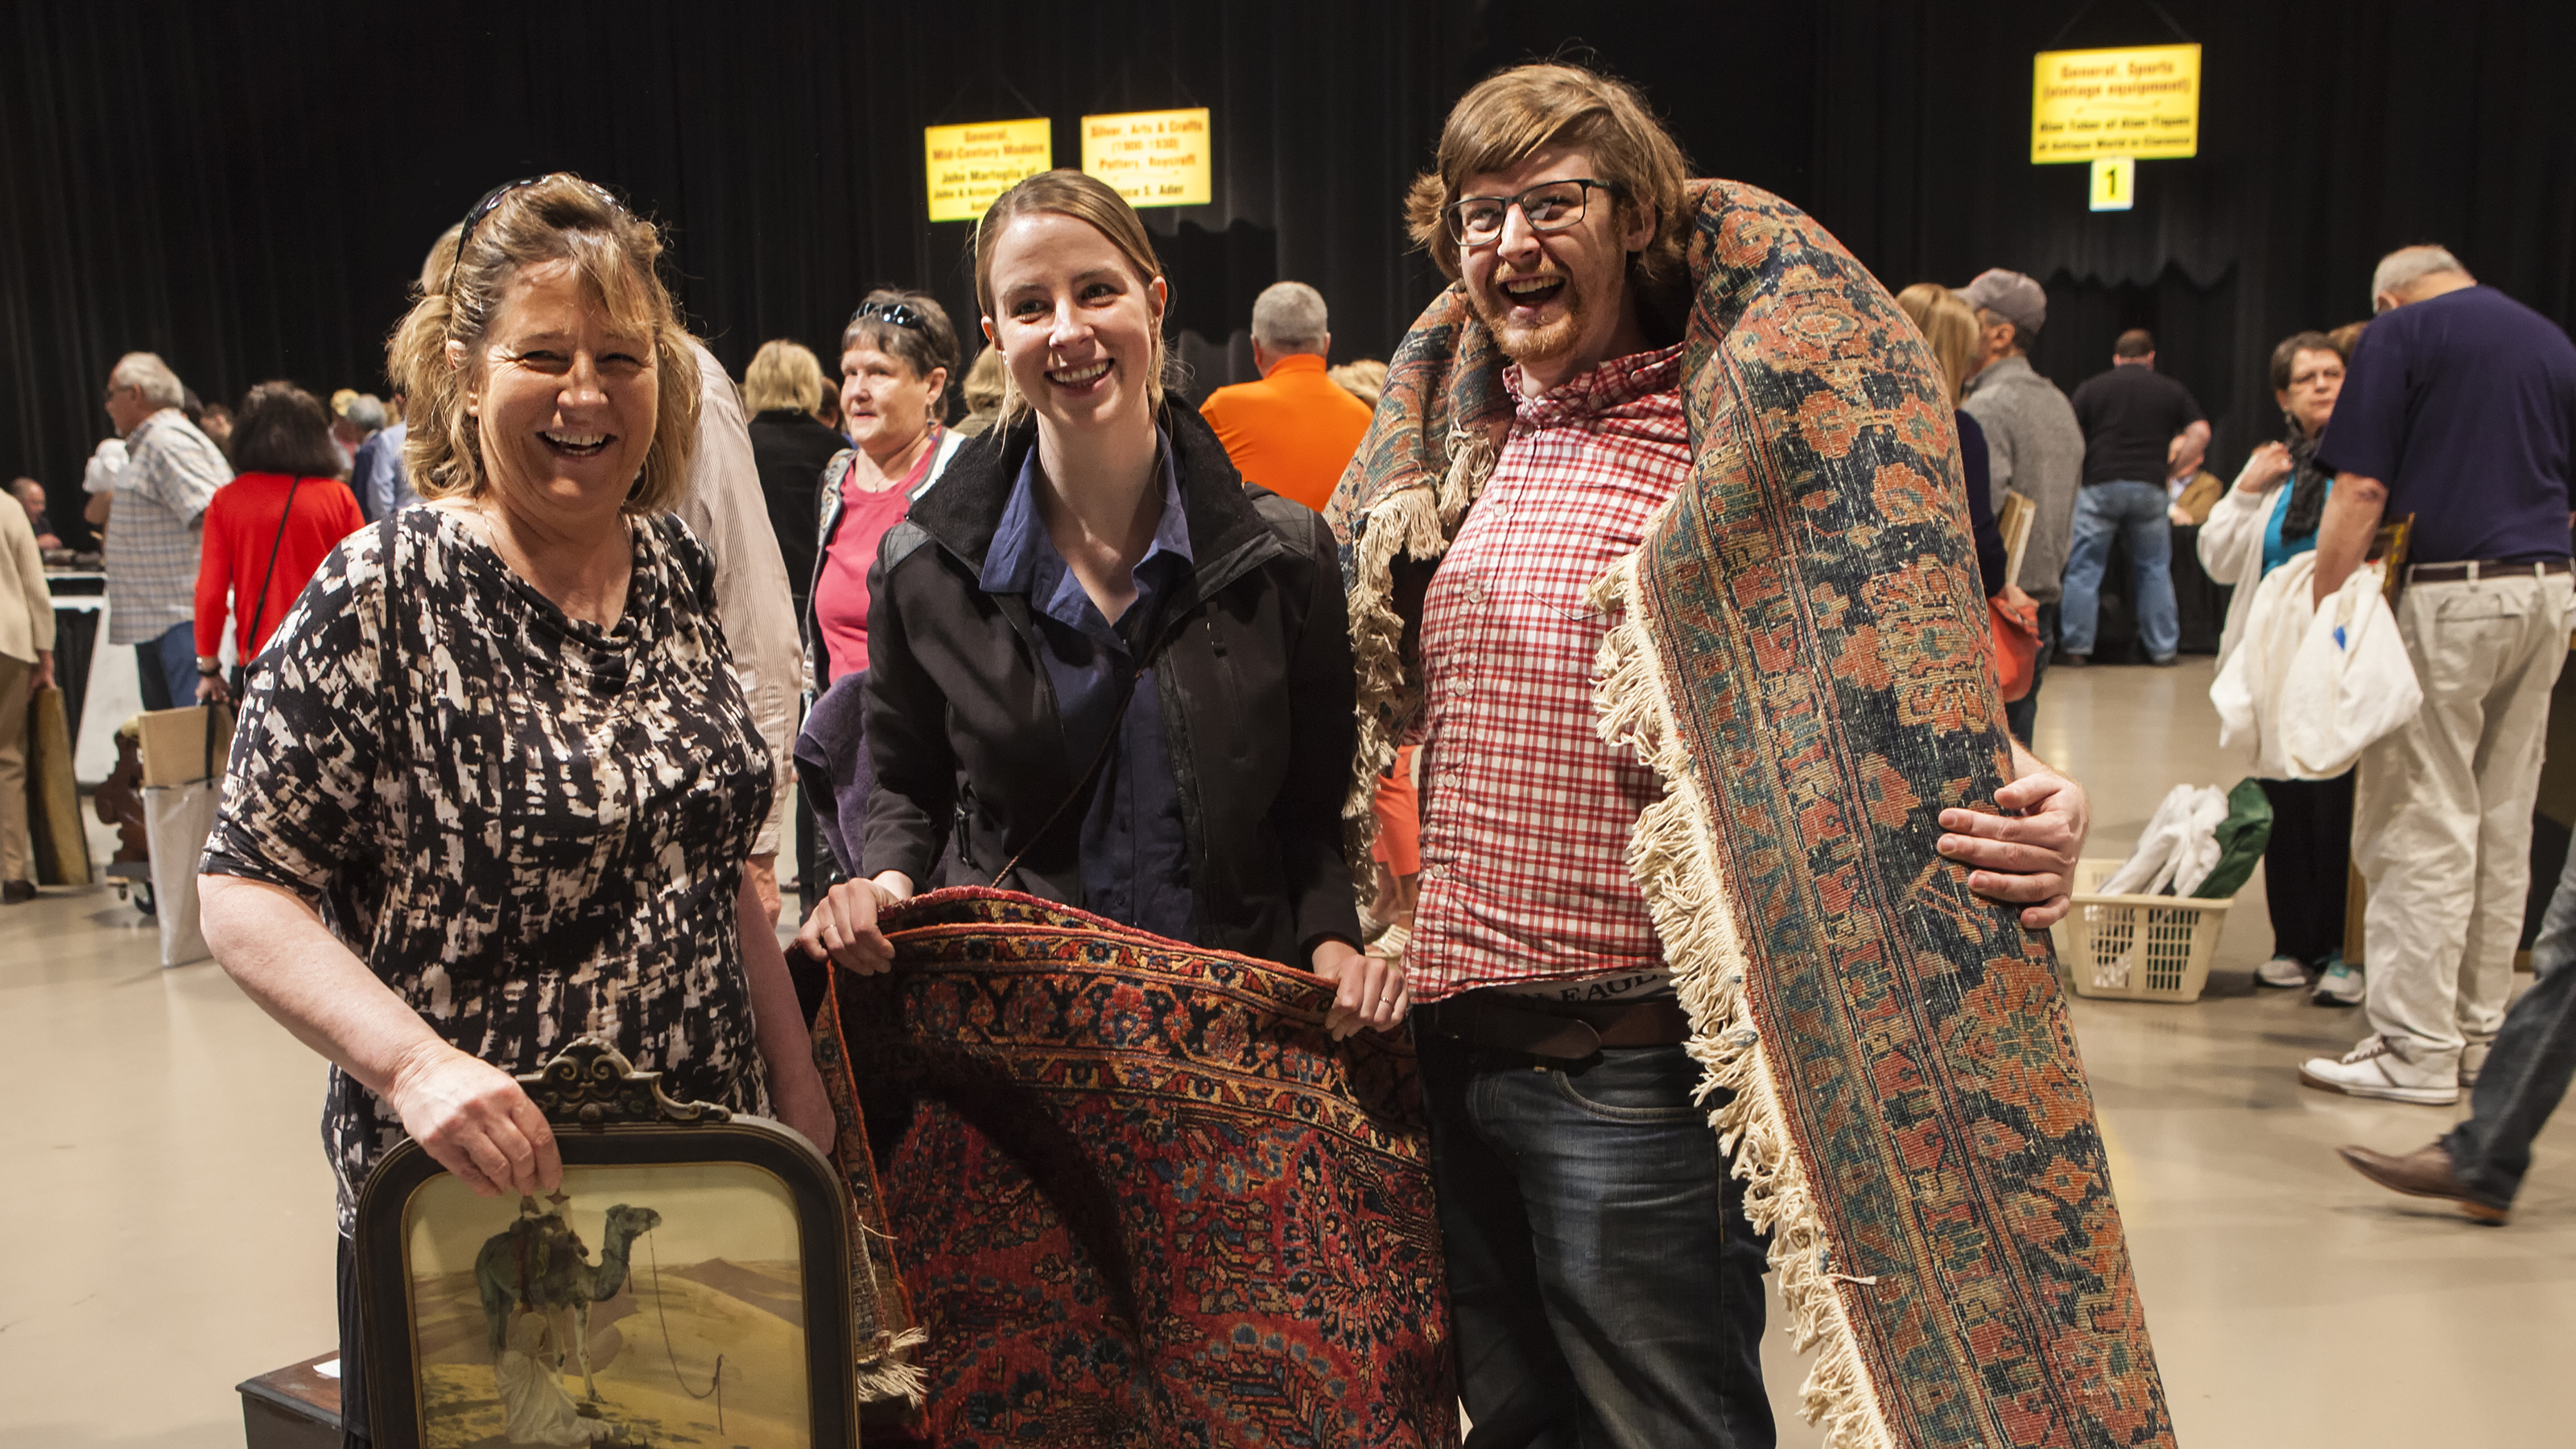 WNED | WBFO Antiques Home Show attendees